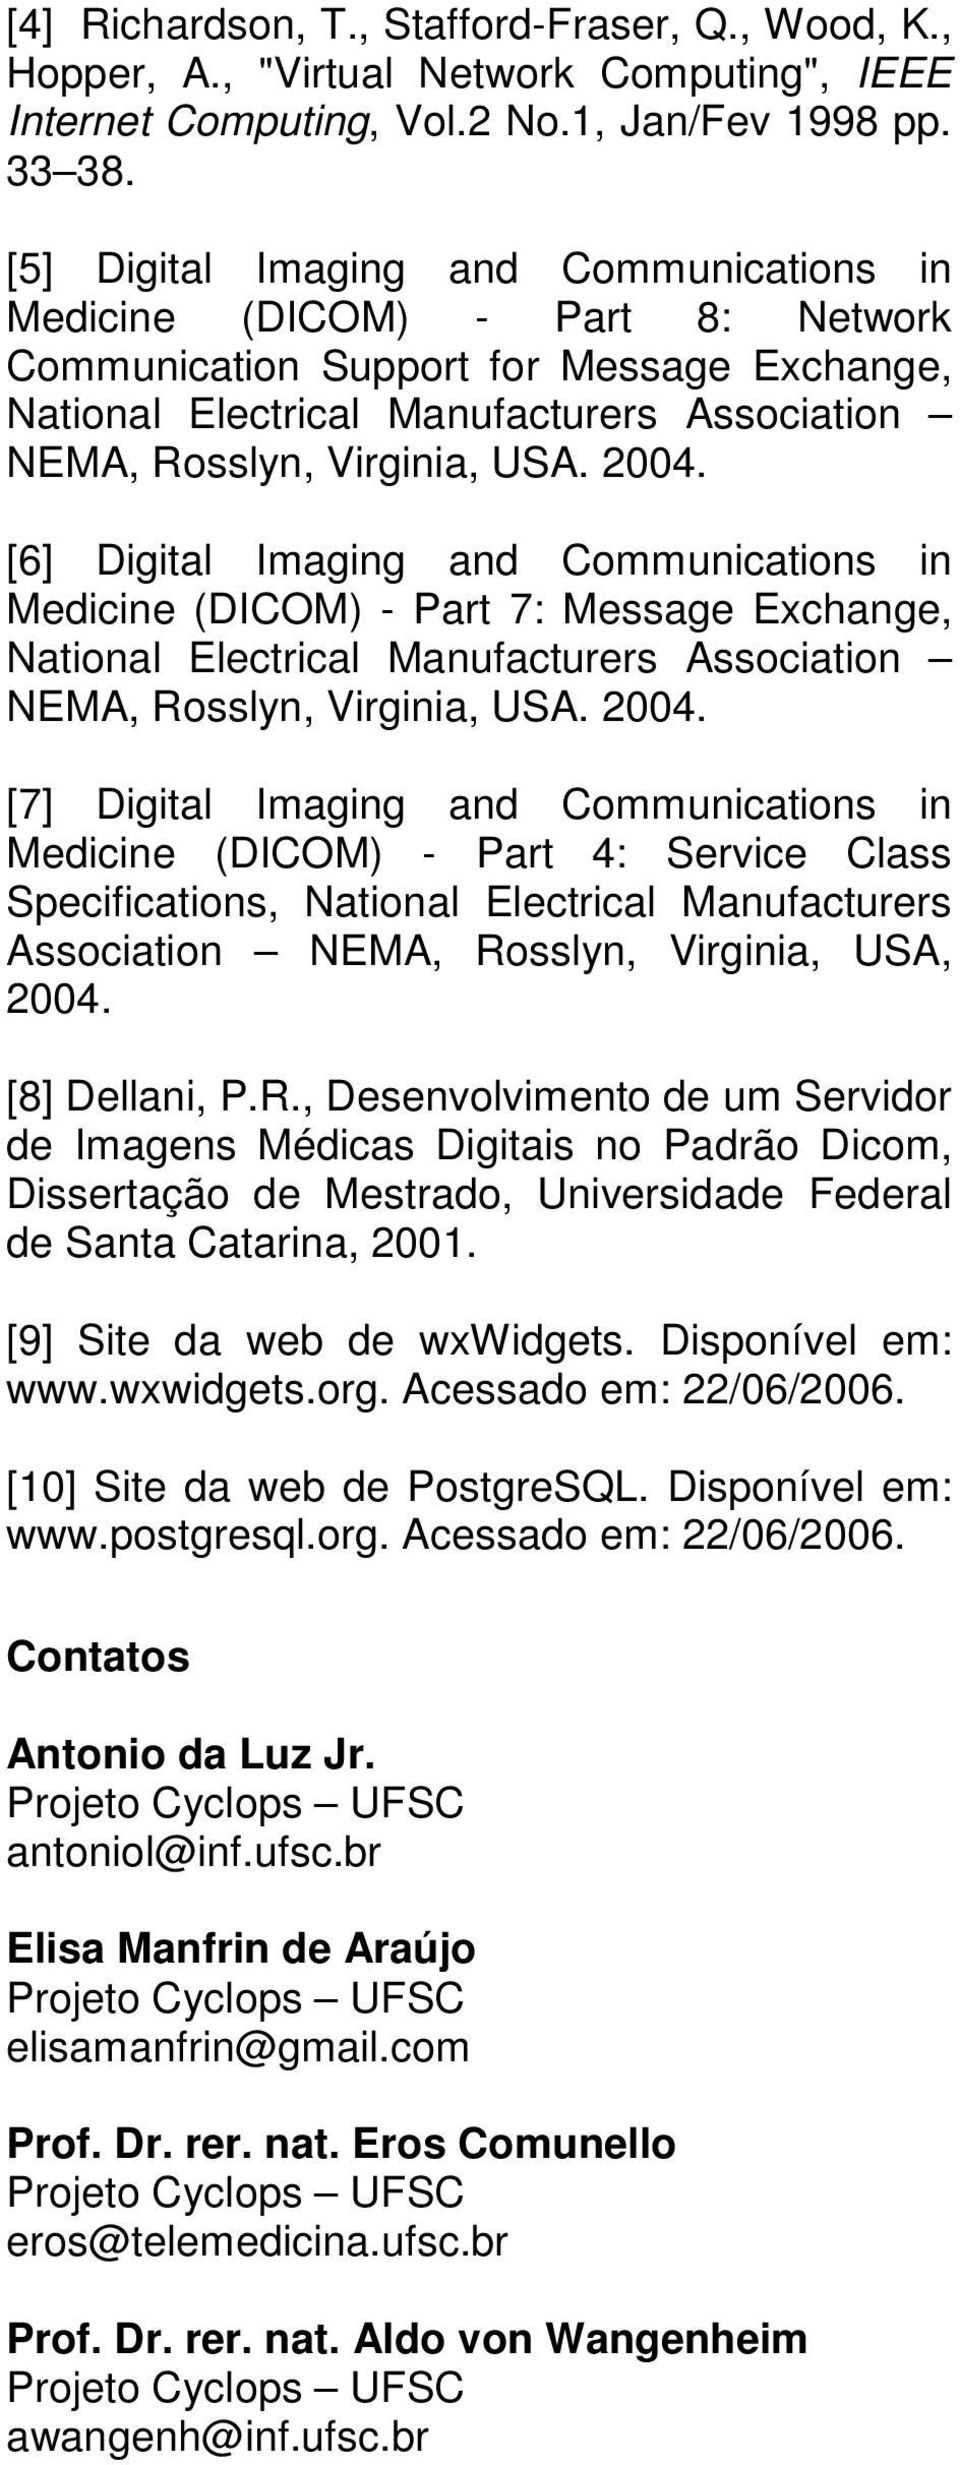 2004. [6] Digital Imaging and Communications in Medicine (DICOM) - Part 7: Message Exchange, National Electrical Manufacturers Association NEMA, Rosslyn, Virginia, USA. 2004.